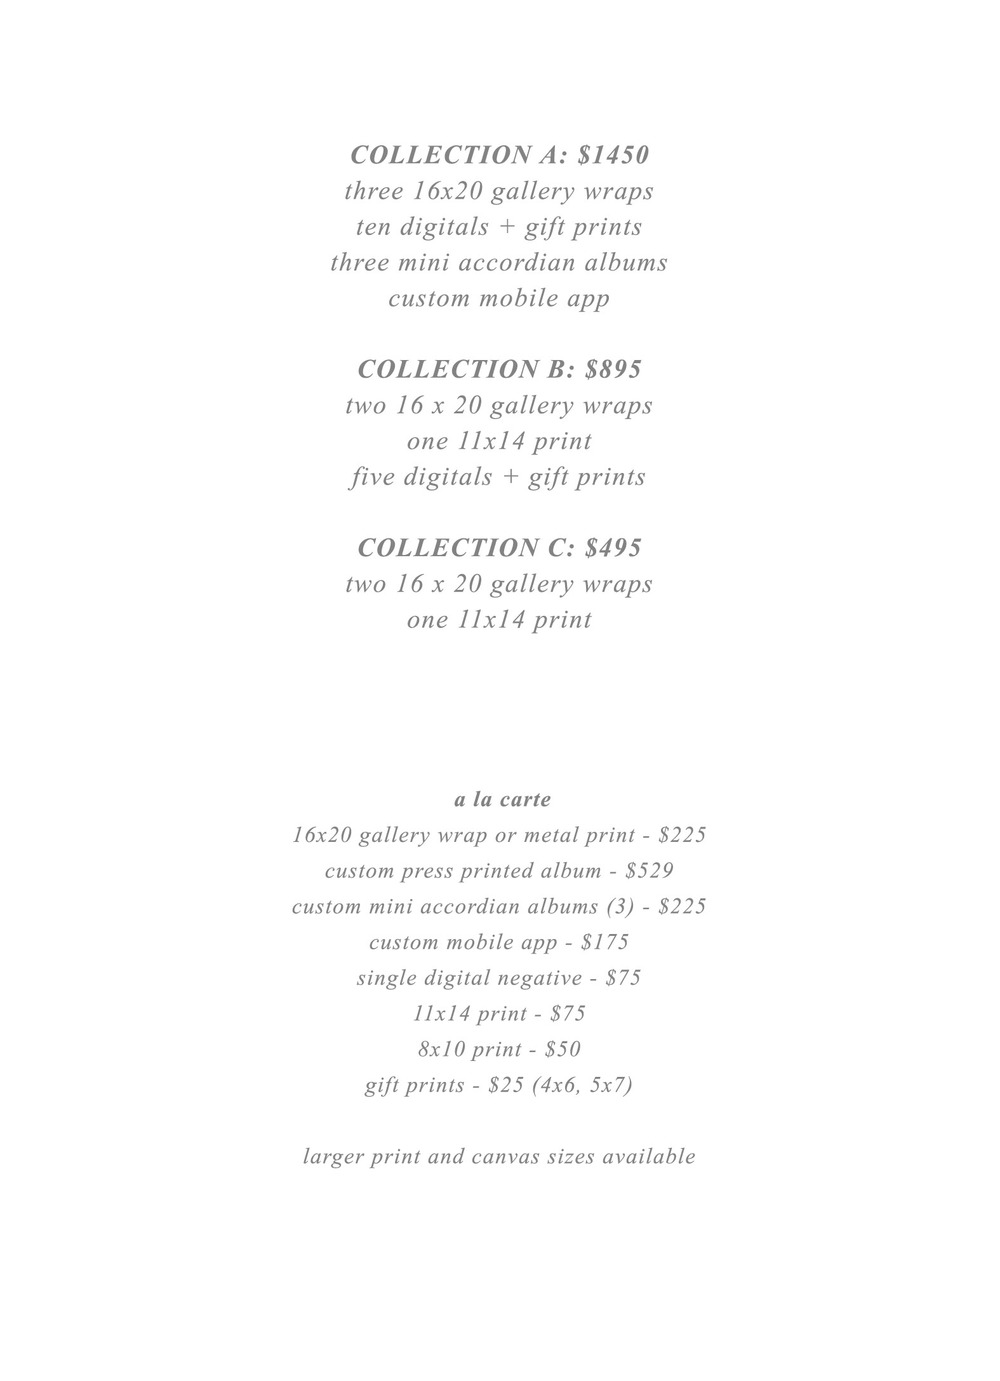 tara_romasanta_2016_collection_pricing.jpg